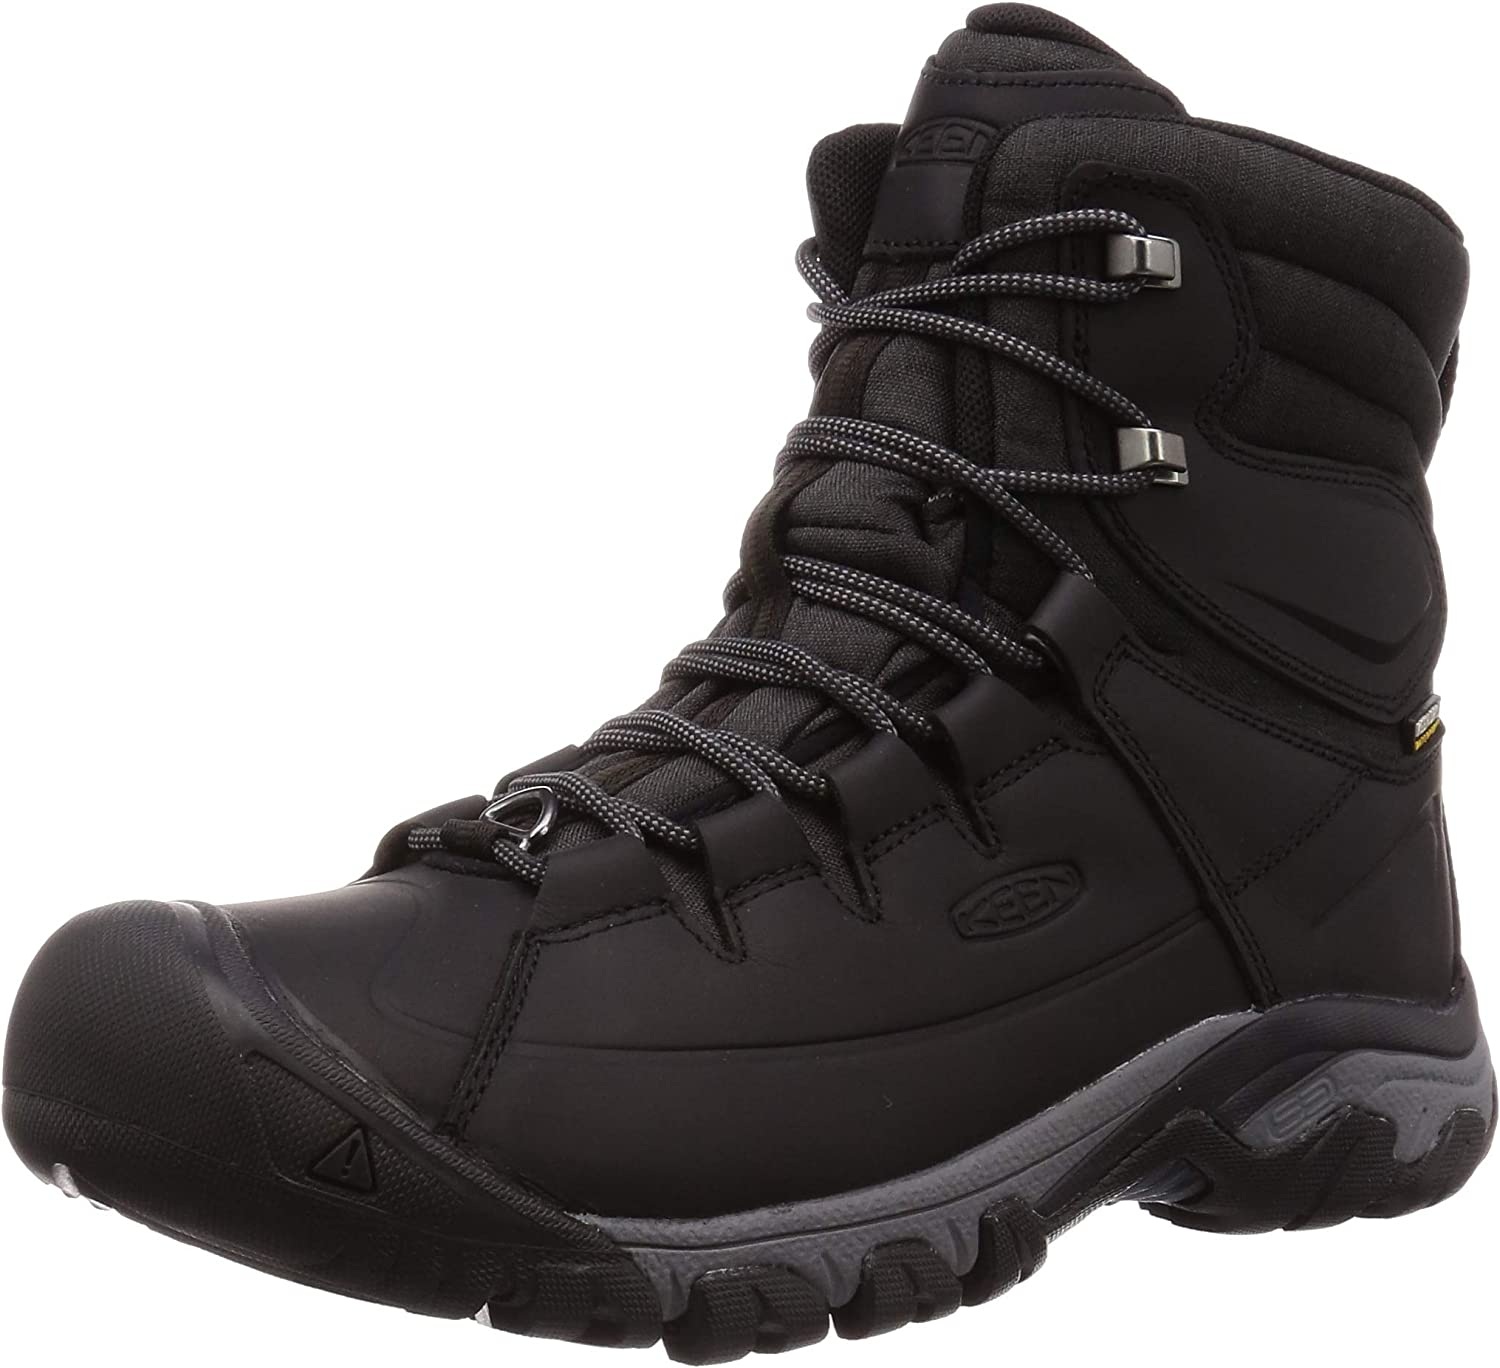 KEEN Max 87% OFF Men's Austin Year-end gift Clog Casual Waterproof